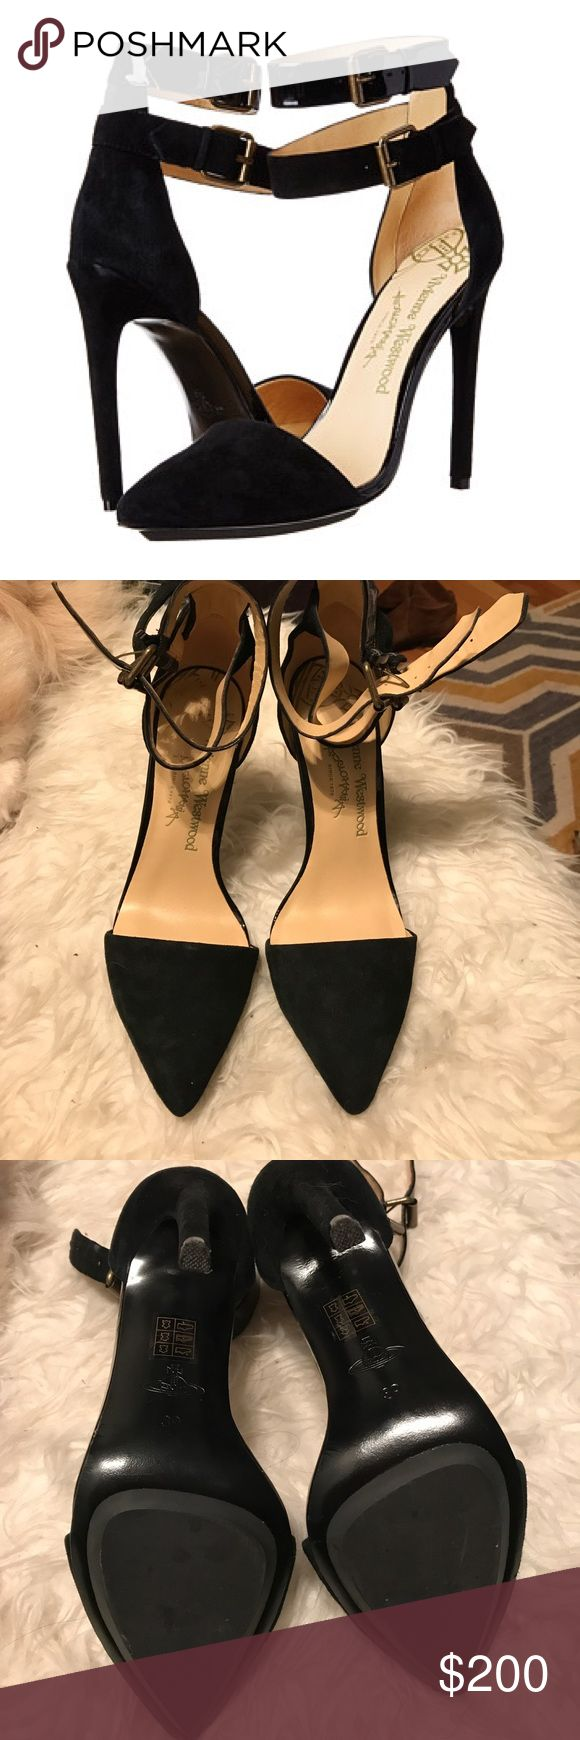 """Vivienne Westwood strappy dress pump Strappy black suede/black patent leather pumps from Vivienne Westwood Anglomania featuring a pointed toe, a brand embossed leather insole, side buckle fastenings and a 5"""" high heel. Fits true to size.   Only worn these once inside my house! They are in really great condition - soles are like new - only flaw is wear under the pointed toes (see last picture) but this is not visible when you have them on.  Platform measures approximately 0.25"""" 90% suede 10%…"""